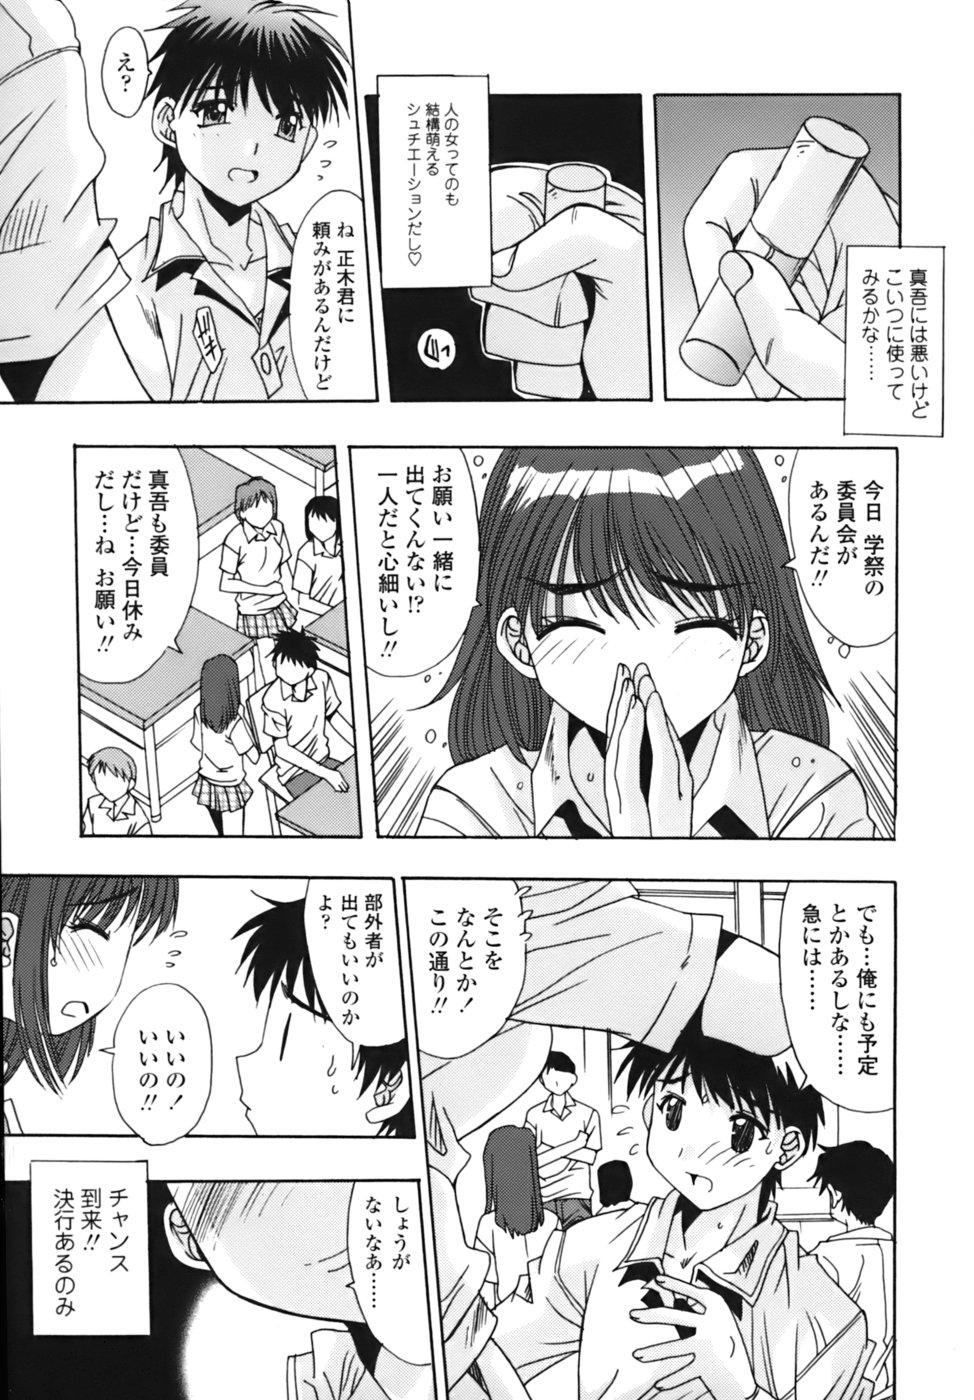 Sange No Koku - At the Time of Scattering Flowers 23